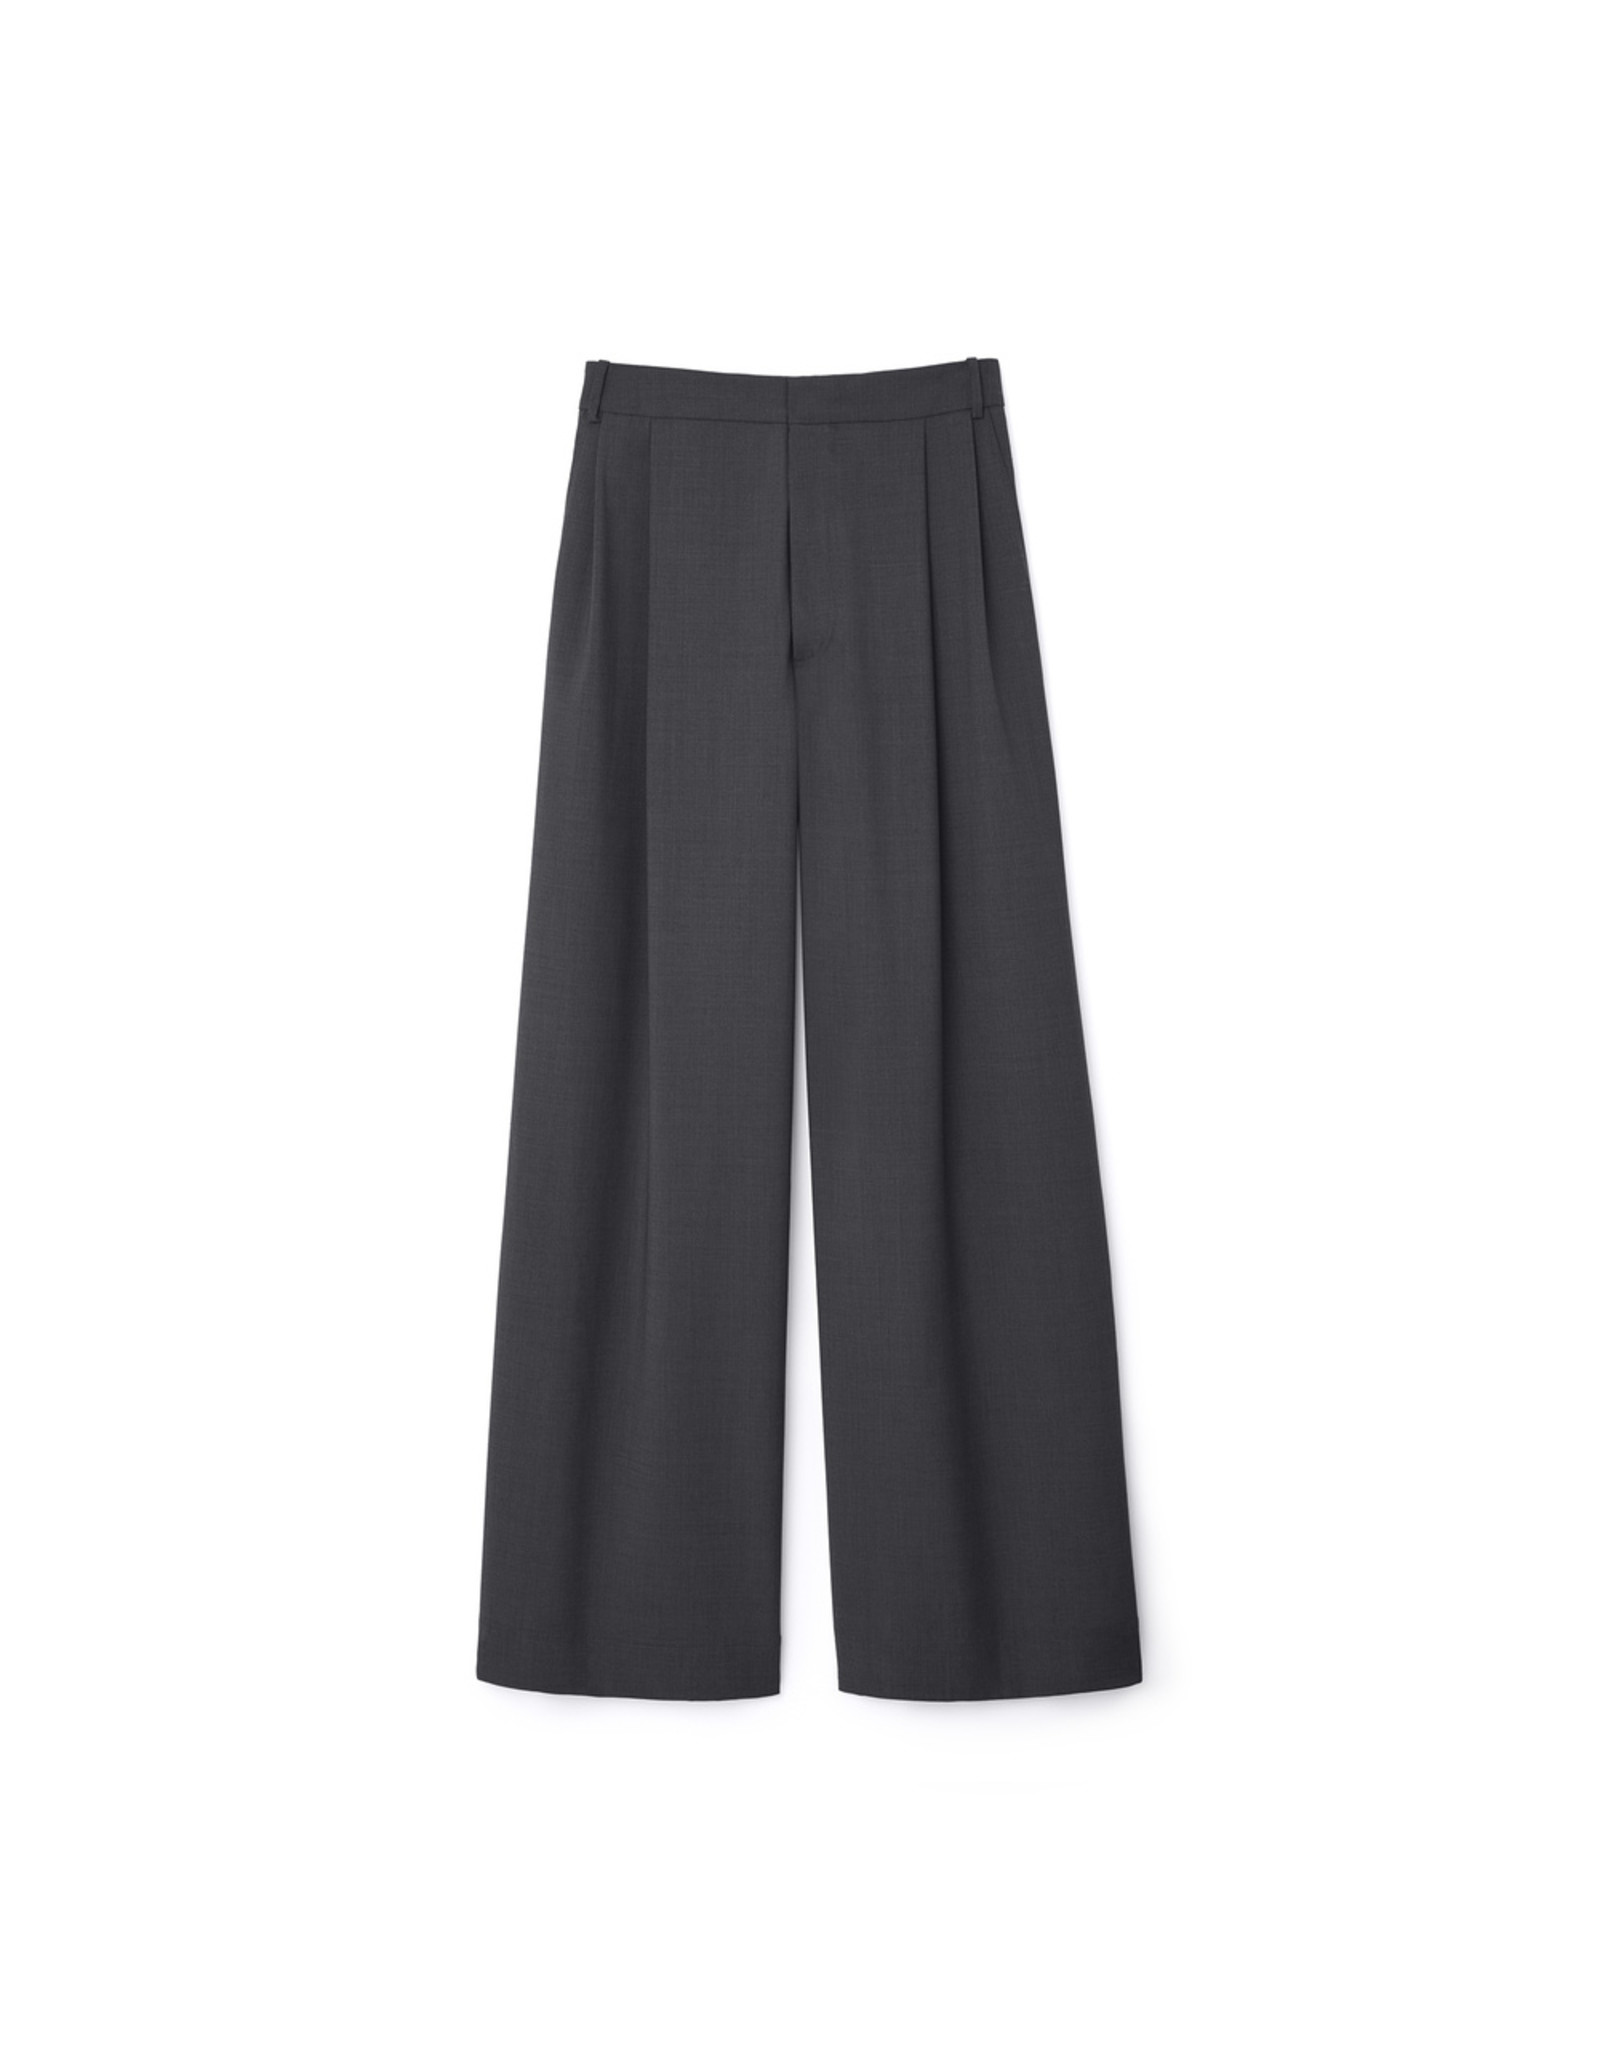 G. Label G. Label Kelly Wide-Leg Trousers (Size: 4, Color: Grey)